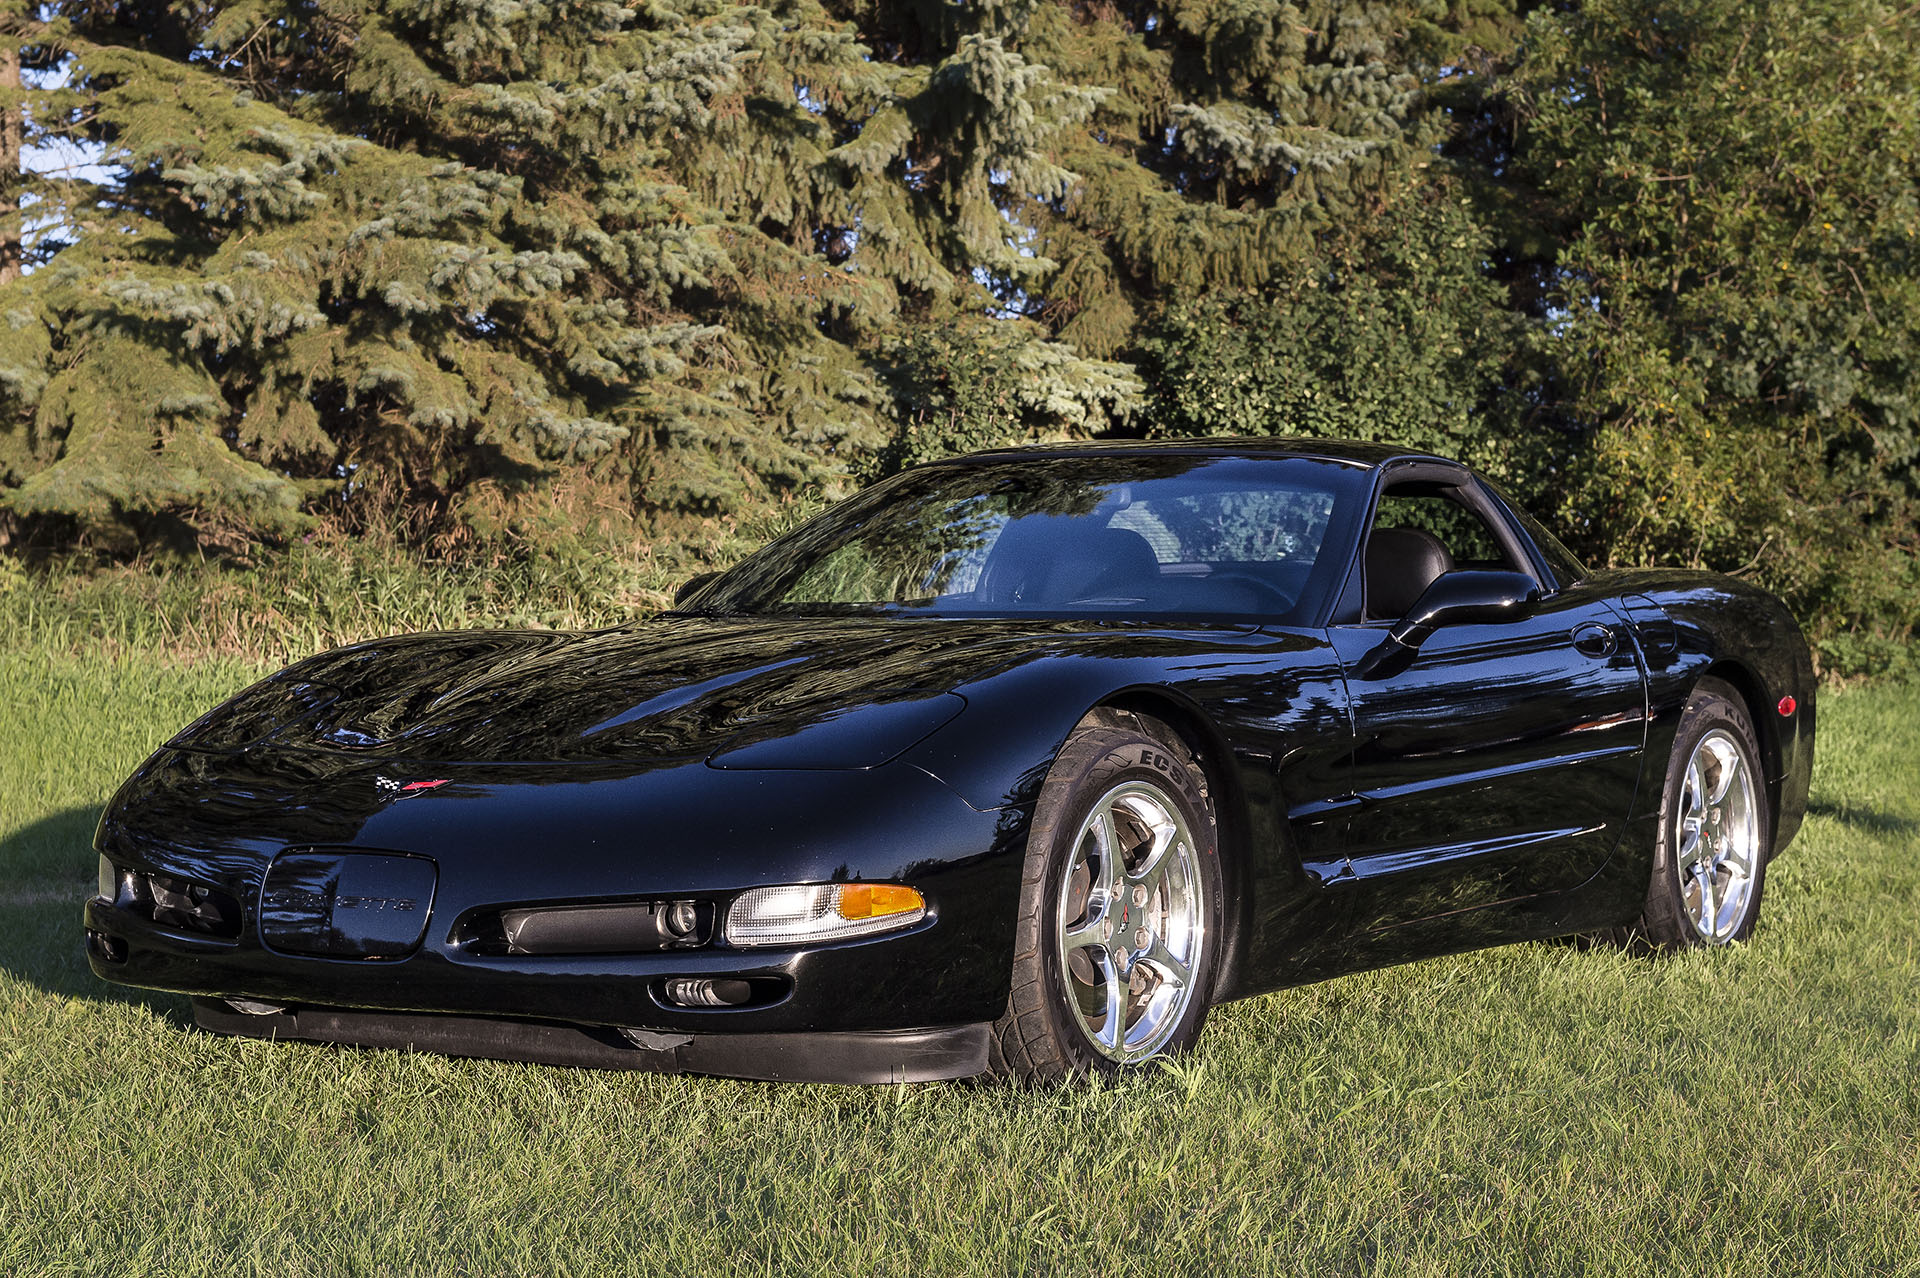 2000 - C5 - Corvette   All Stock except for Magna-Flow exhaust.  5.7 Litre V8 Engine, Automatic Transmission with 67,000 kms.  This car has provided the owner with many enjoyable trips and Kruz's with Just Kruzin Car Club